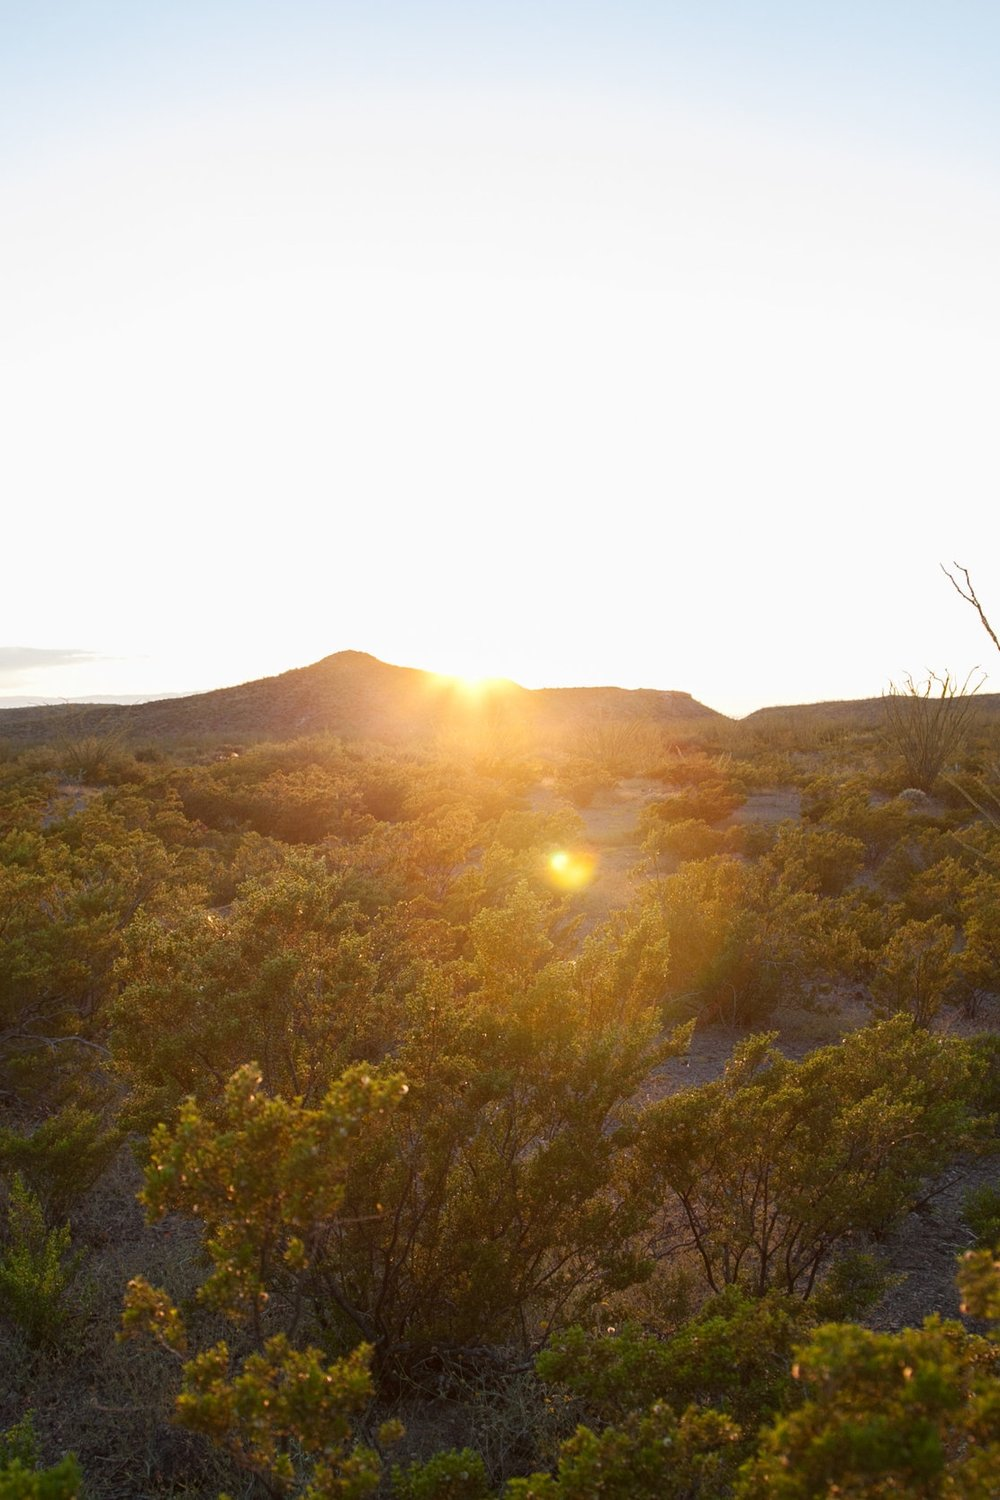 Sunset in the Chihuahuan Desert.